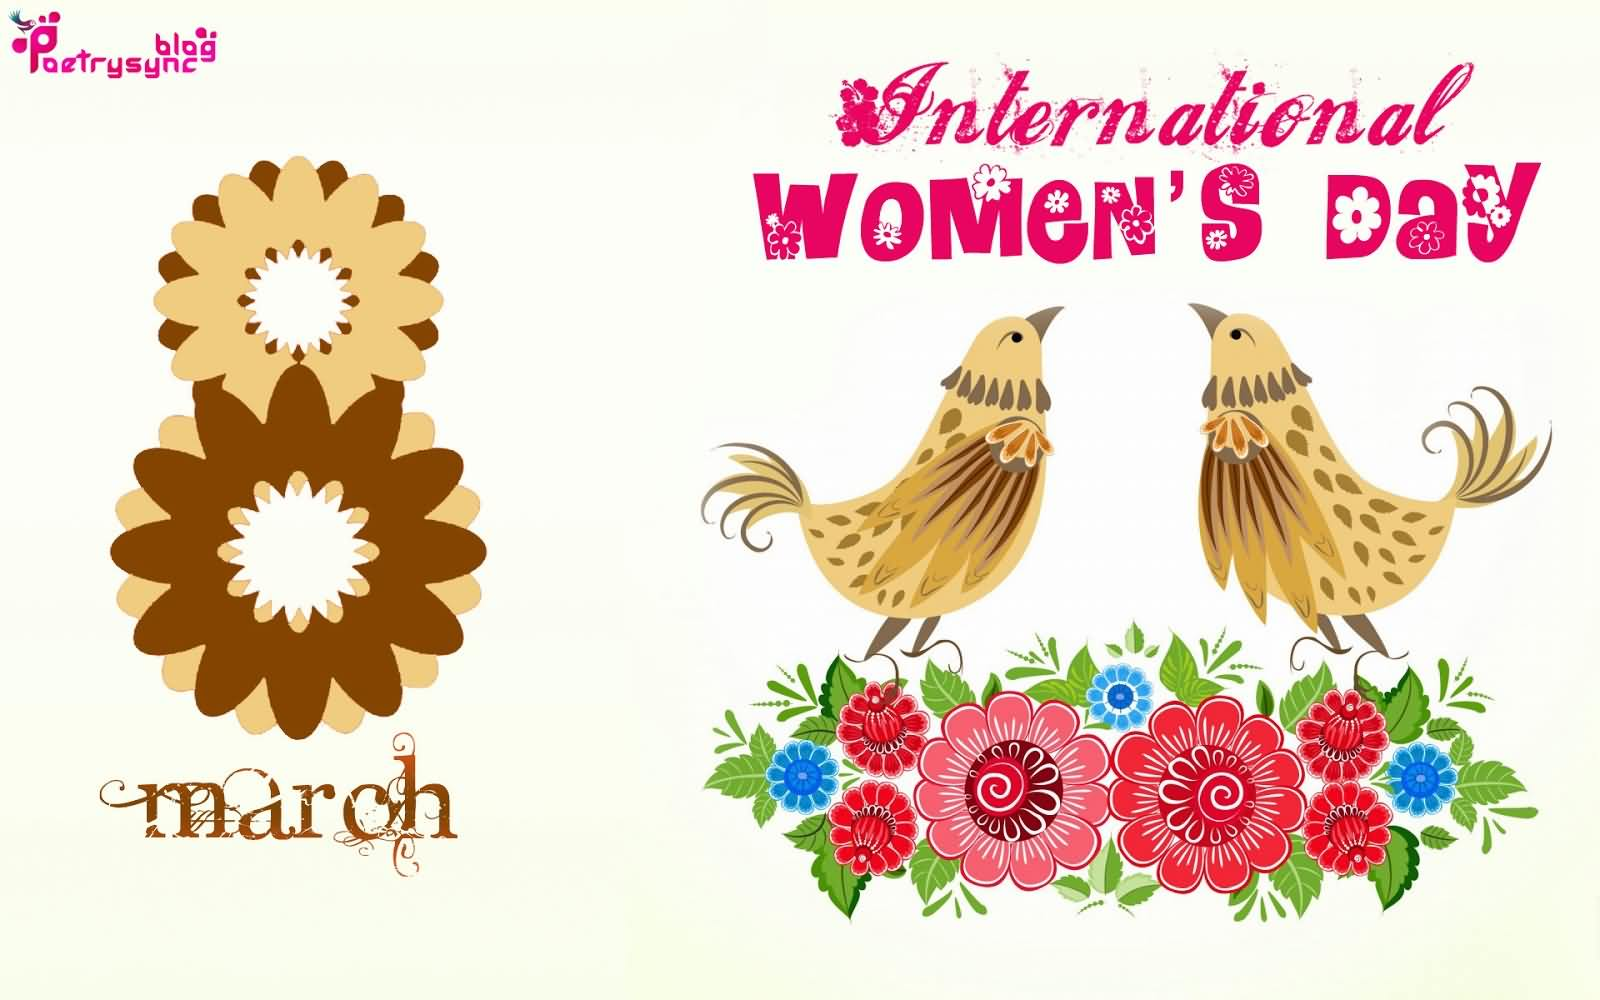 8 March International Women's Day Wonderful Greetings